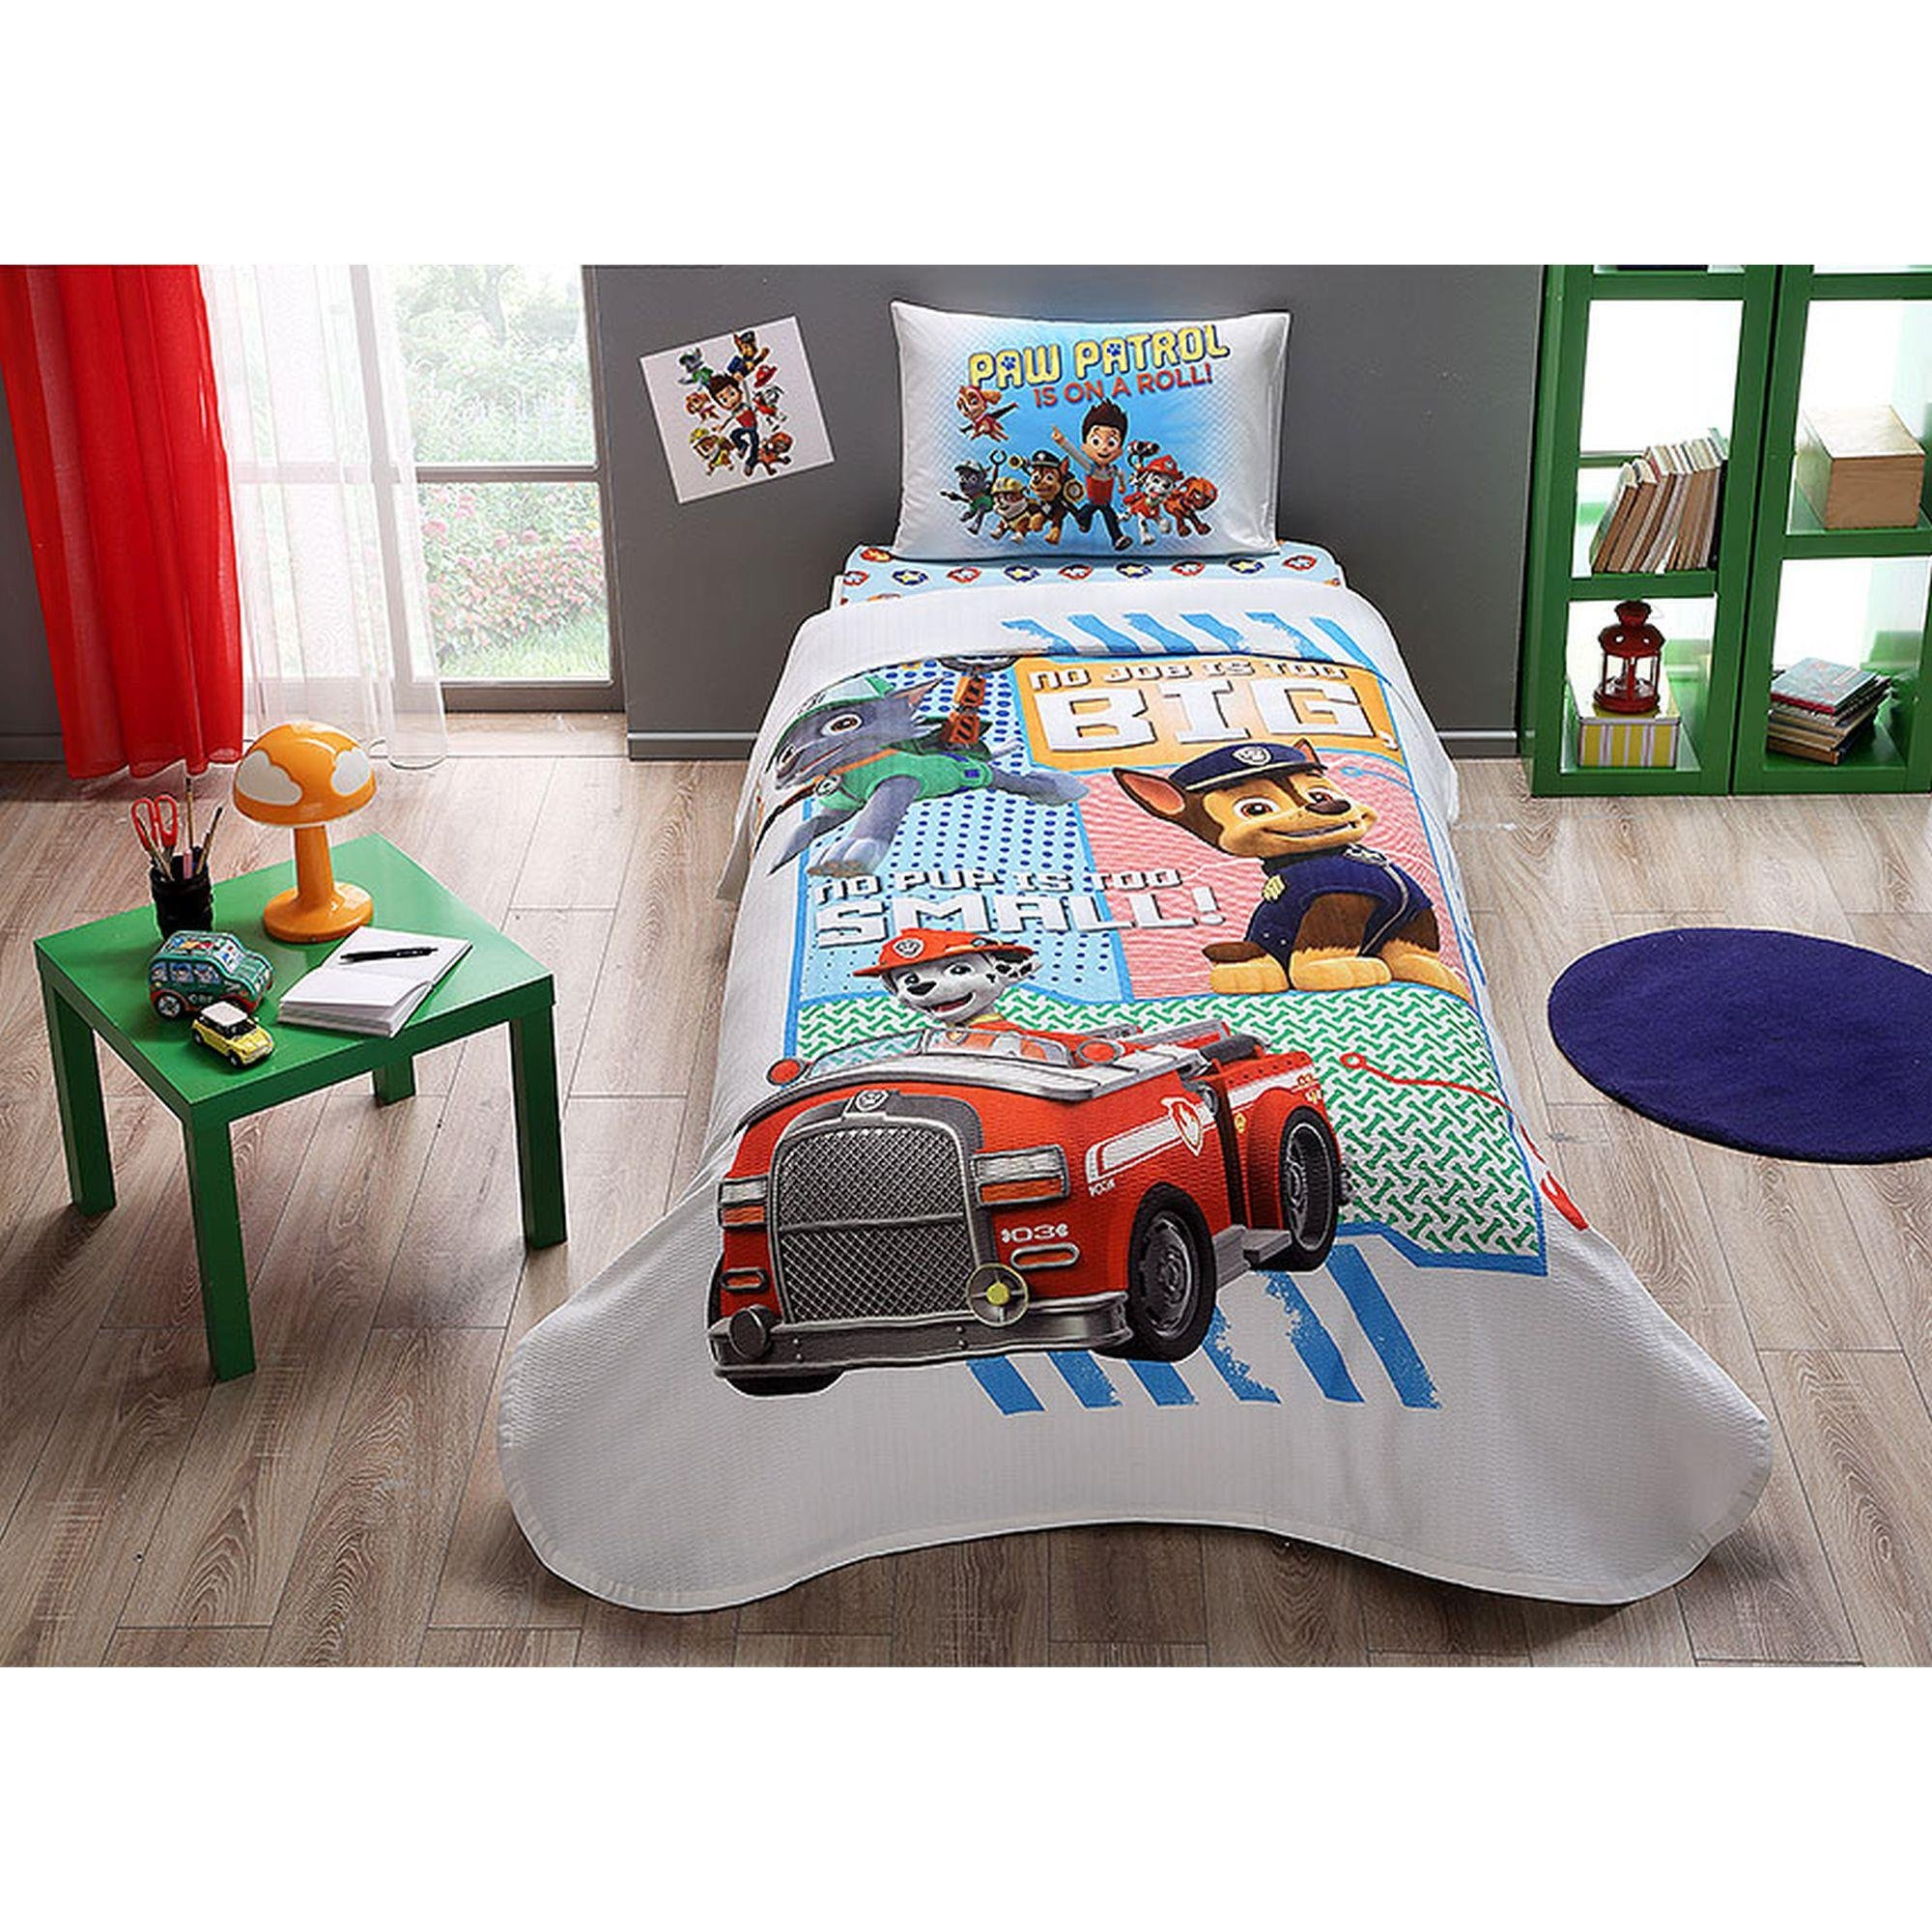 TAC 3-Piece Paw Patrol Dogs Licensed Cartoons Bedspread Coverlet (Pique) Set, 100% Pure Cotton Luxury, Children Teenager Single Size